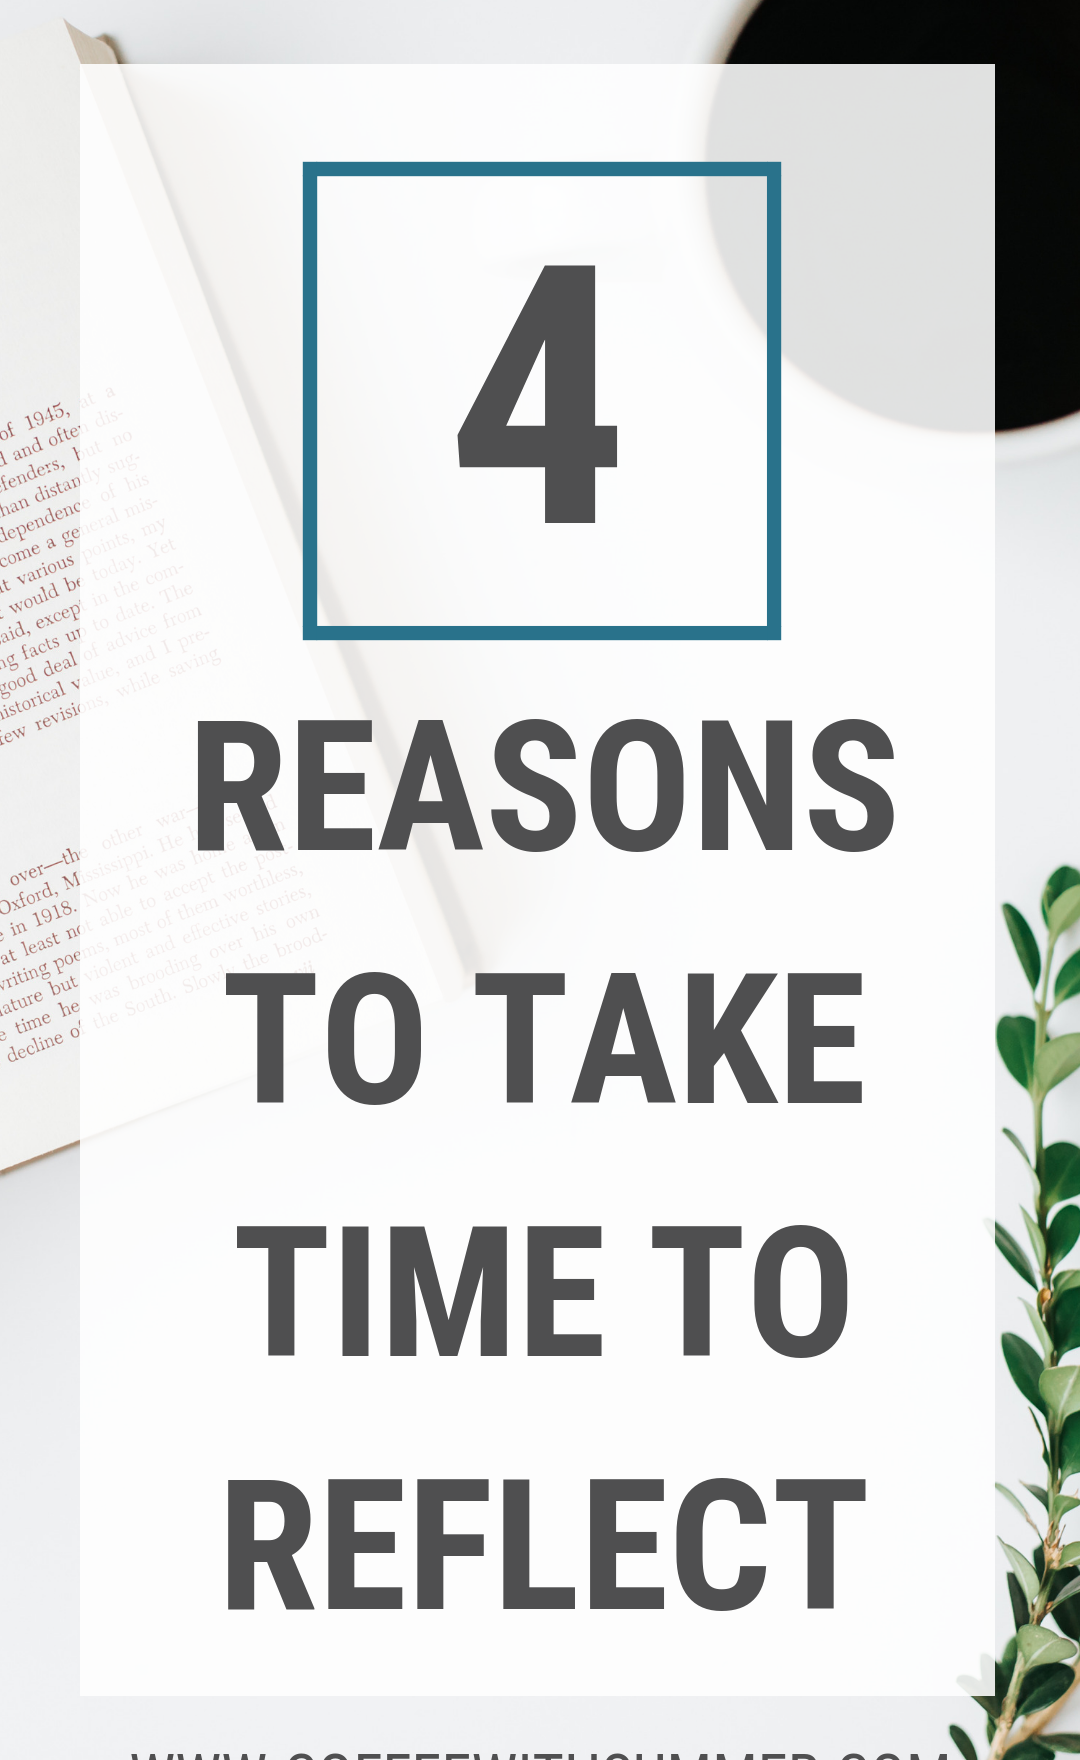 Why You Should Take Time To Reflect